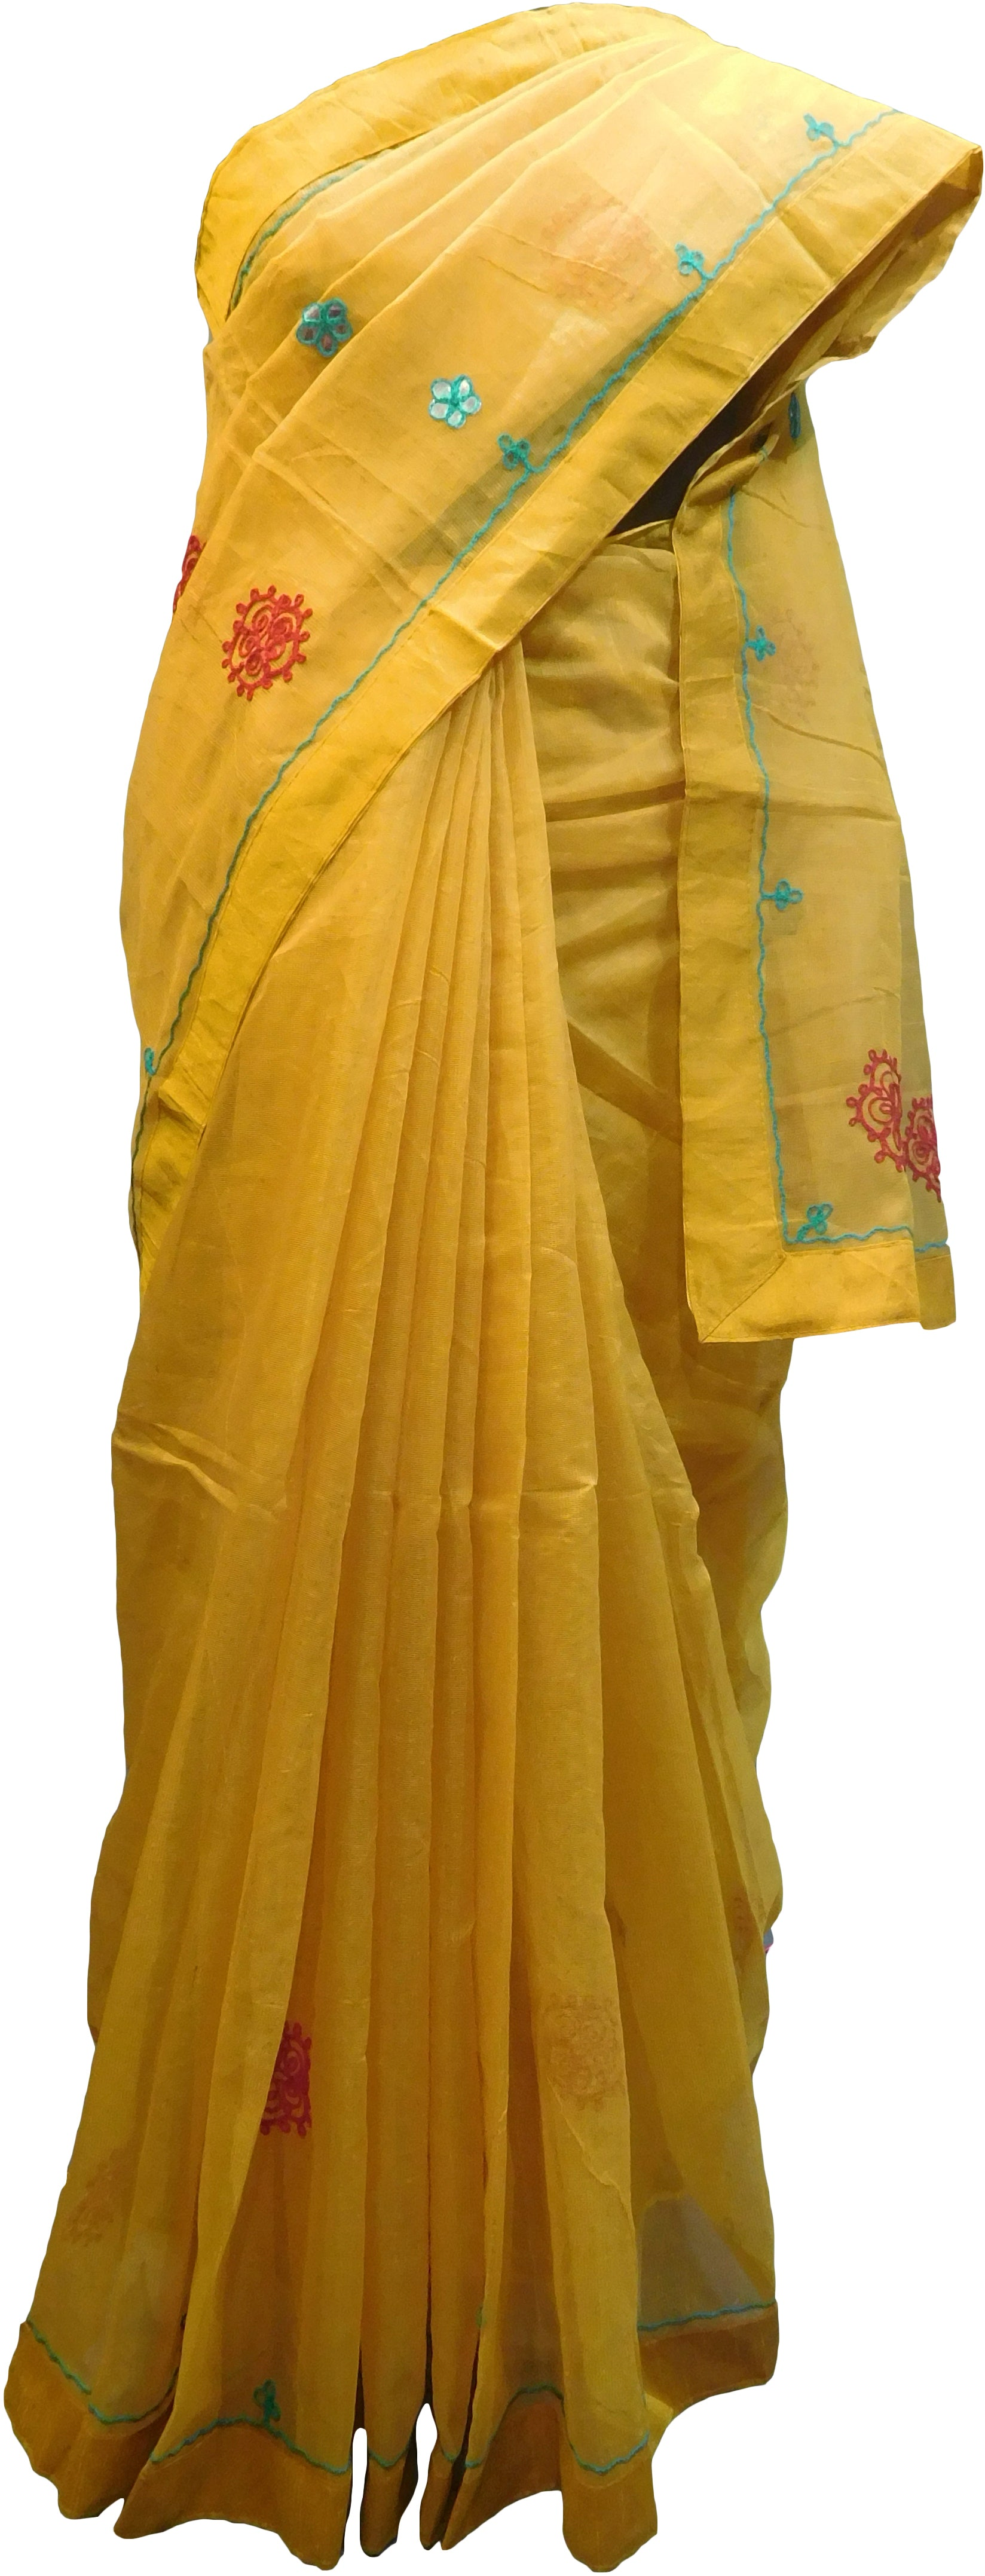 SMSAREE Yellow Designer Wedding Partywear Supernet (Cotton) Thread Hand Embroidery Work Bridal Saree Sari With Blouse Piece F016